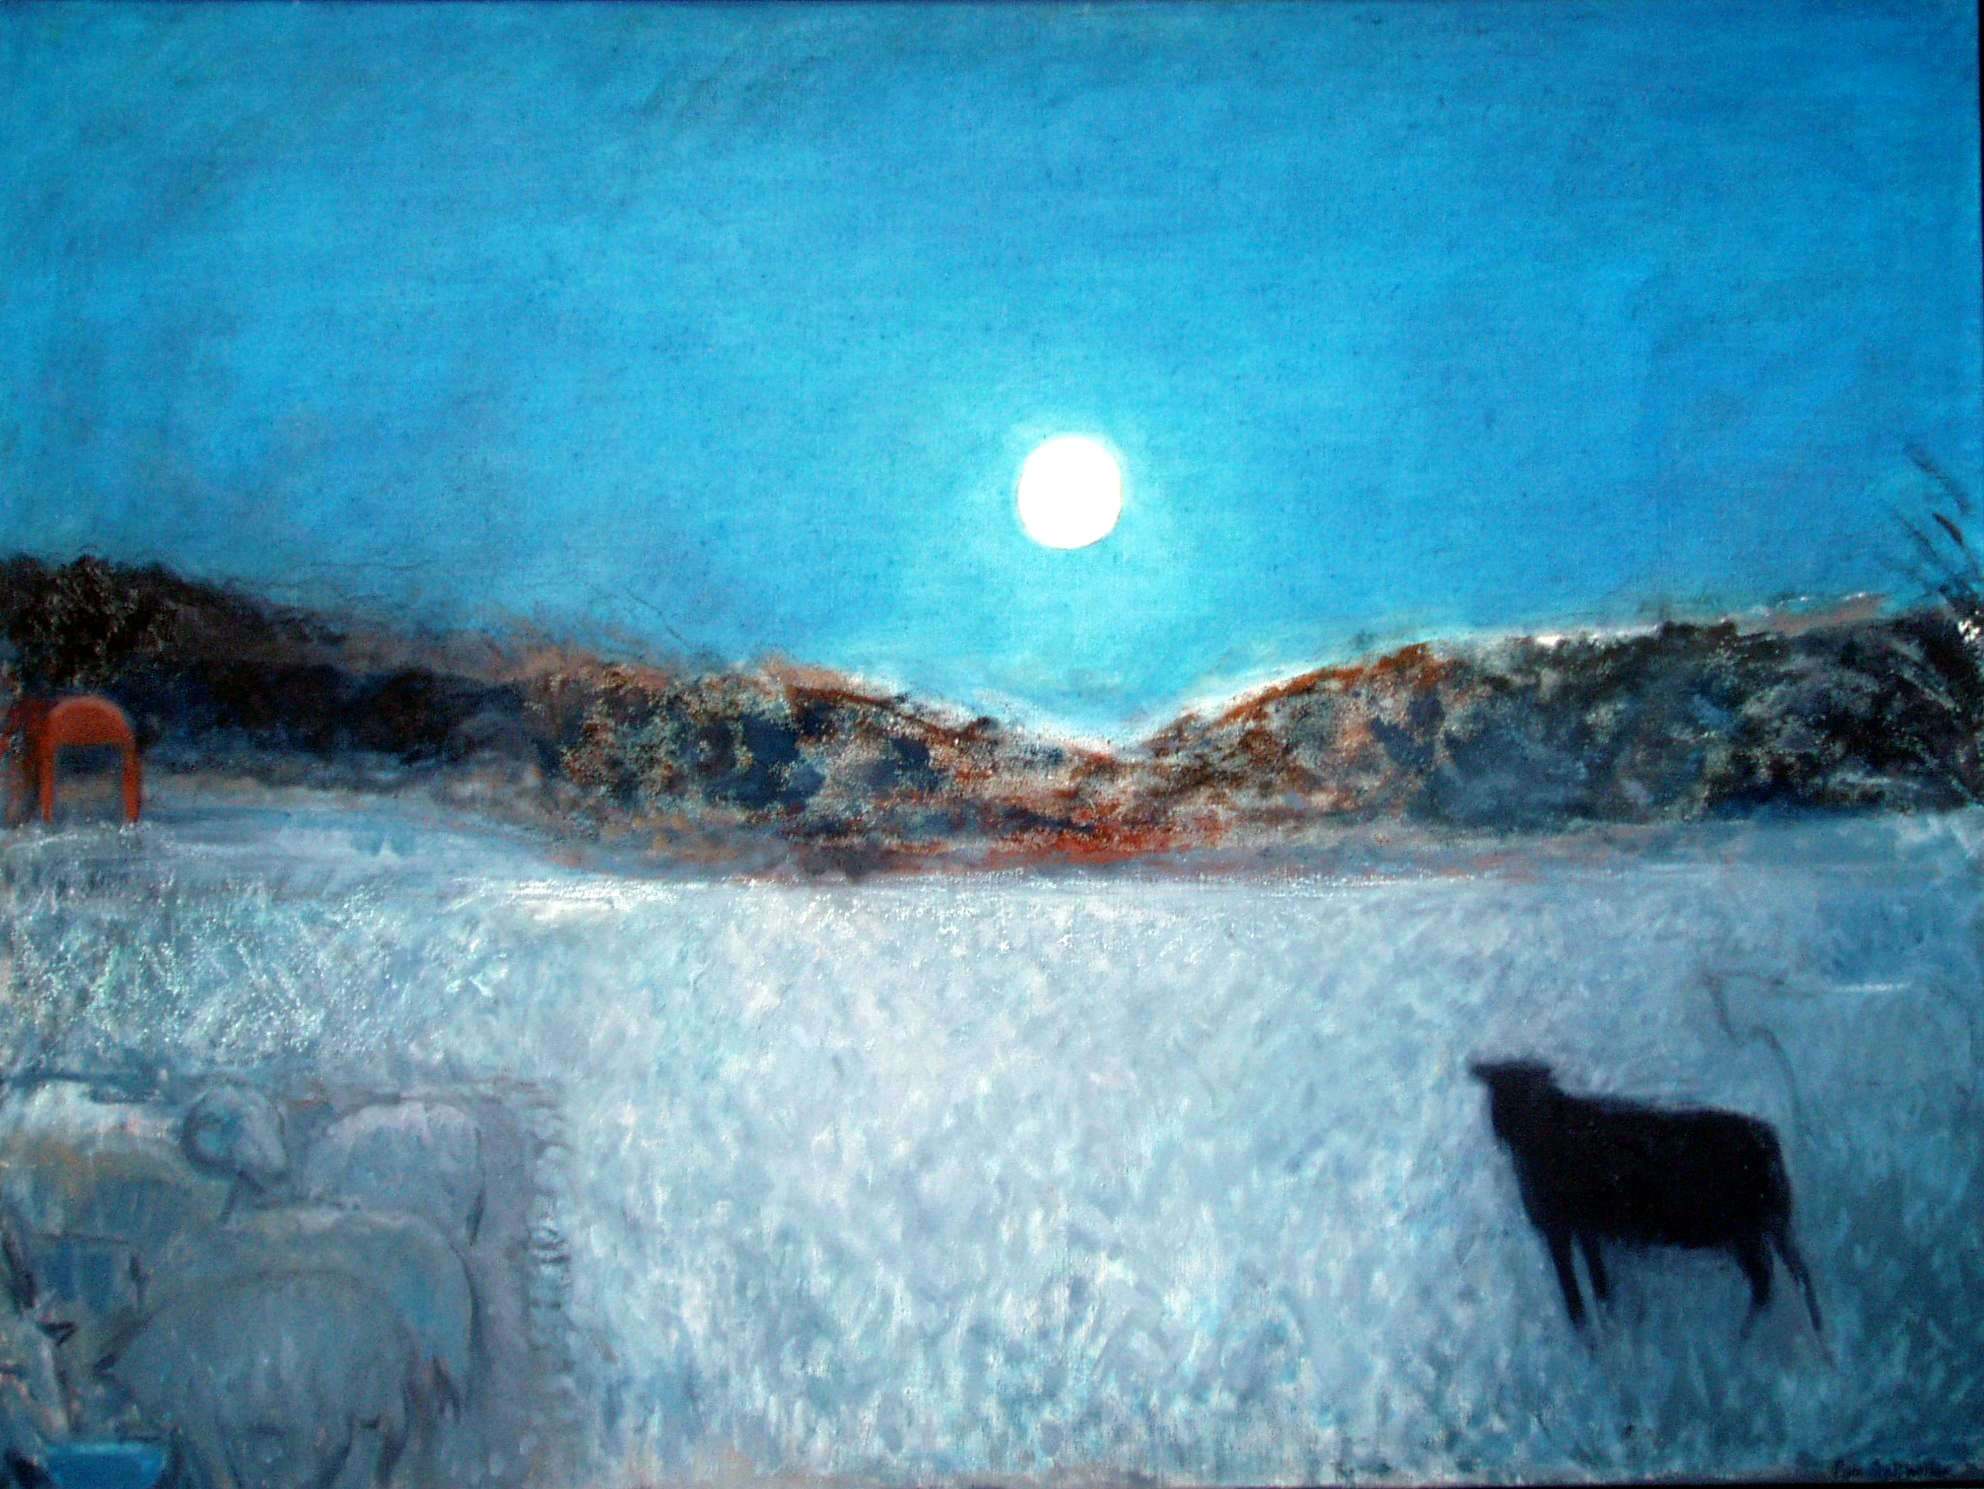 Unpenned Sheep and Moon, 98 x 120 cm, oil on linen